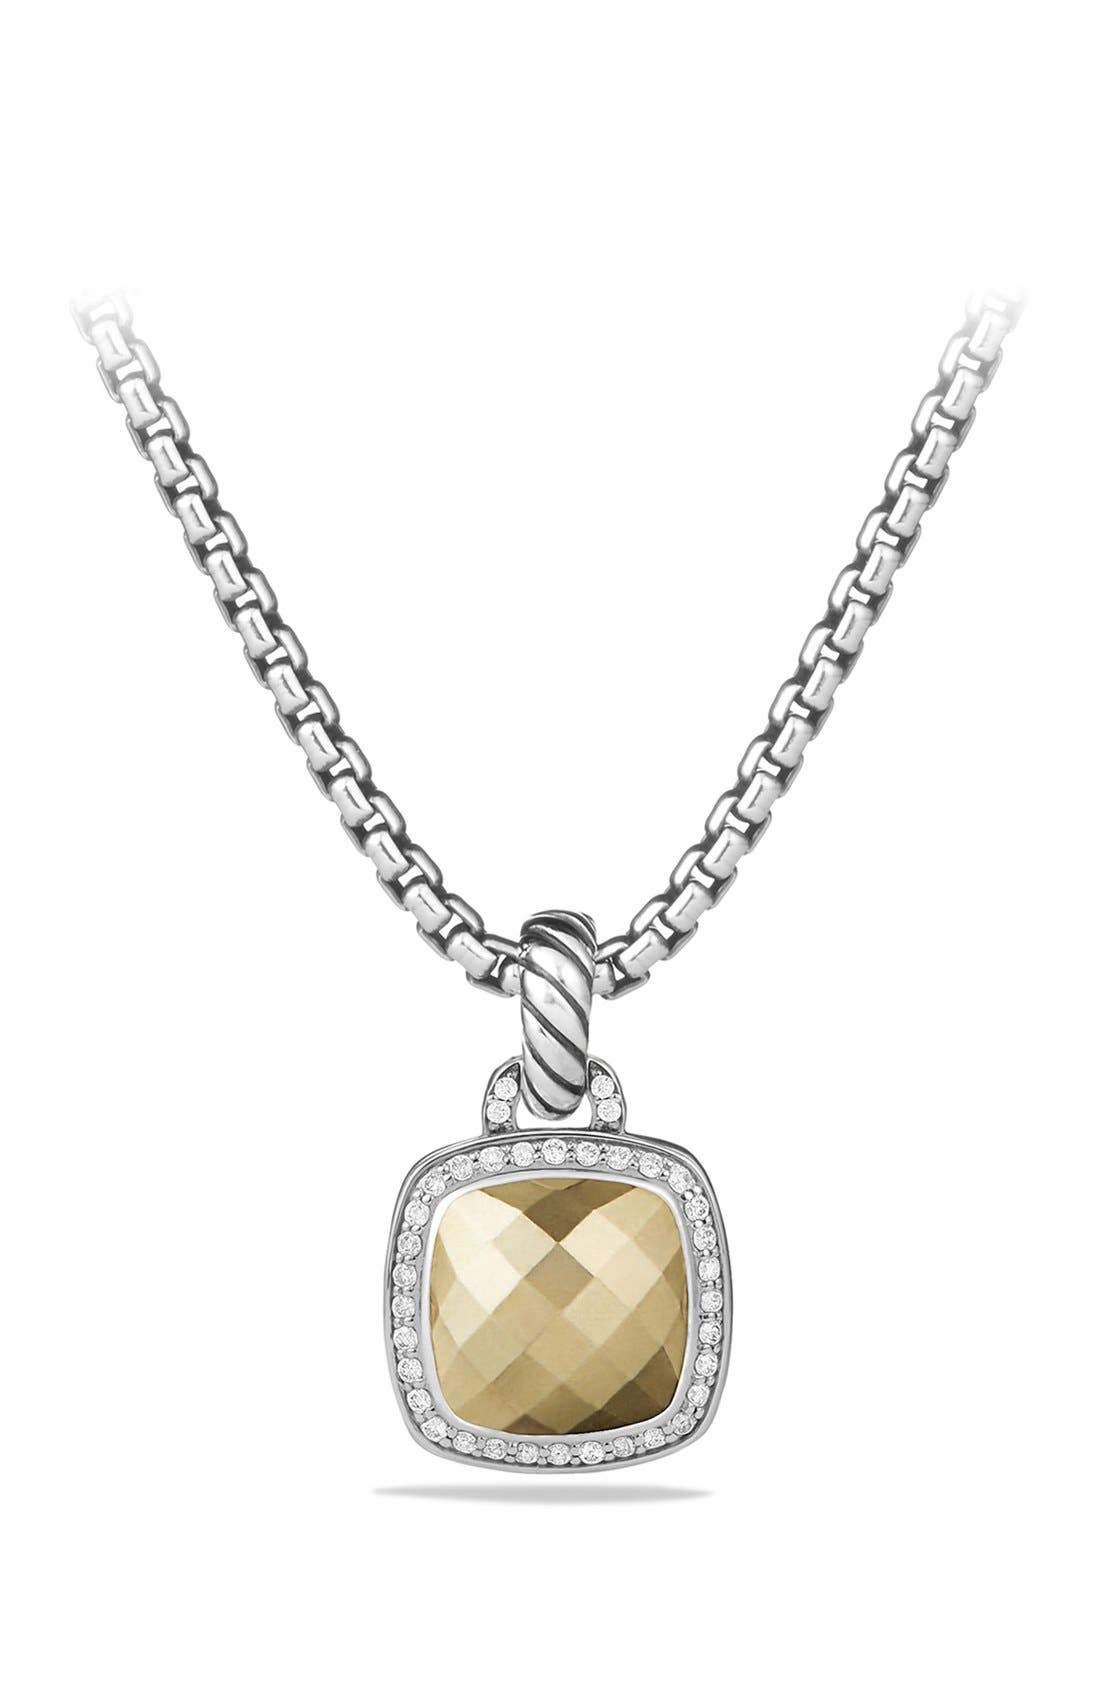 David Yurman 'Albion' Pendant with Gold Dome and Diamonds